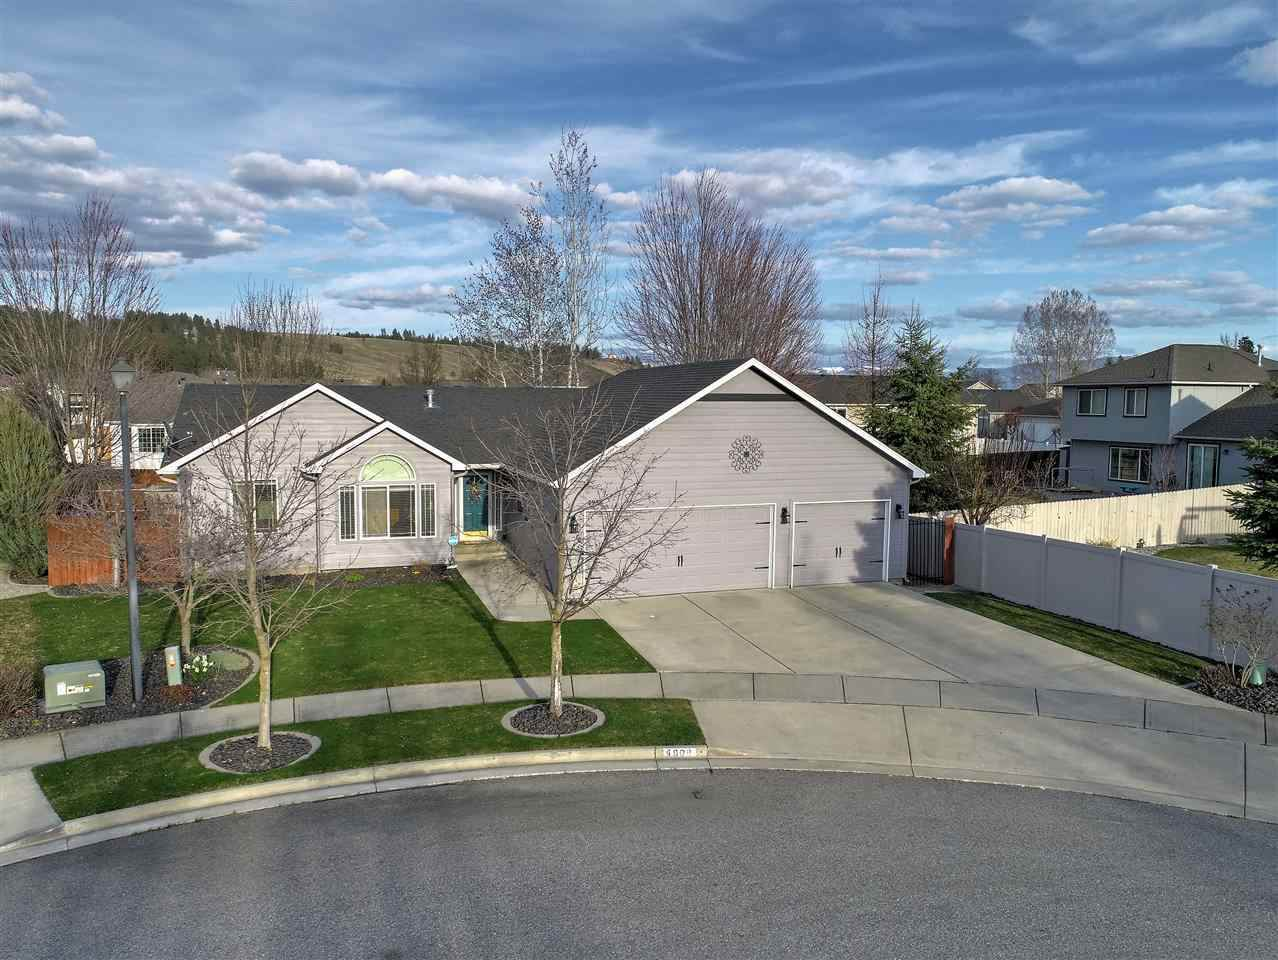 4908 Maple Ct - Photo 1